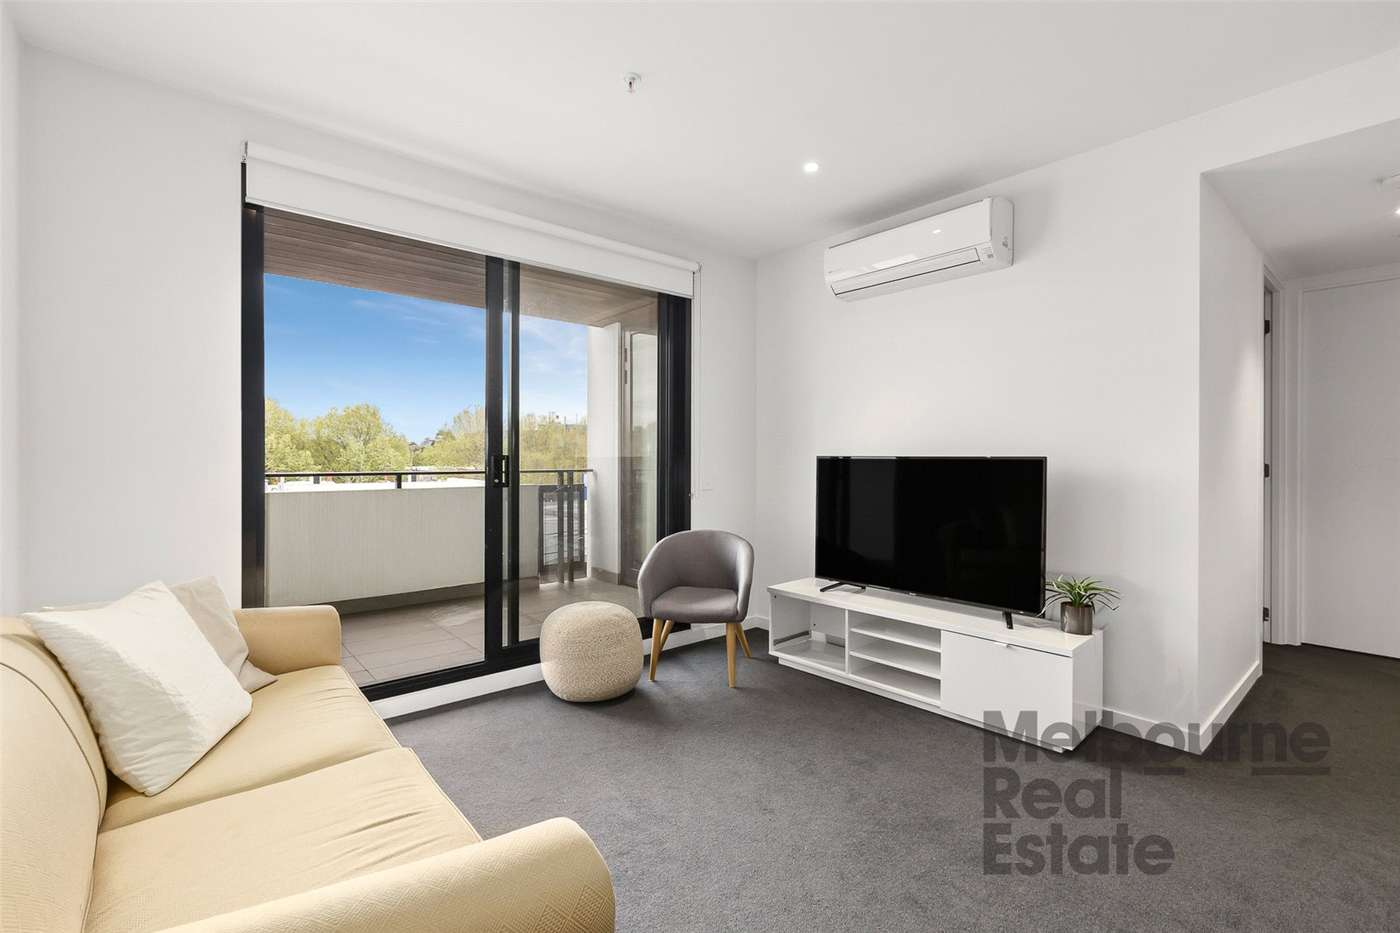 Main view of Homely apartment listing, 203/6 Mater Street, Collingwood, VIC 3066